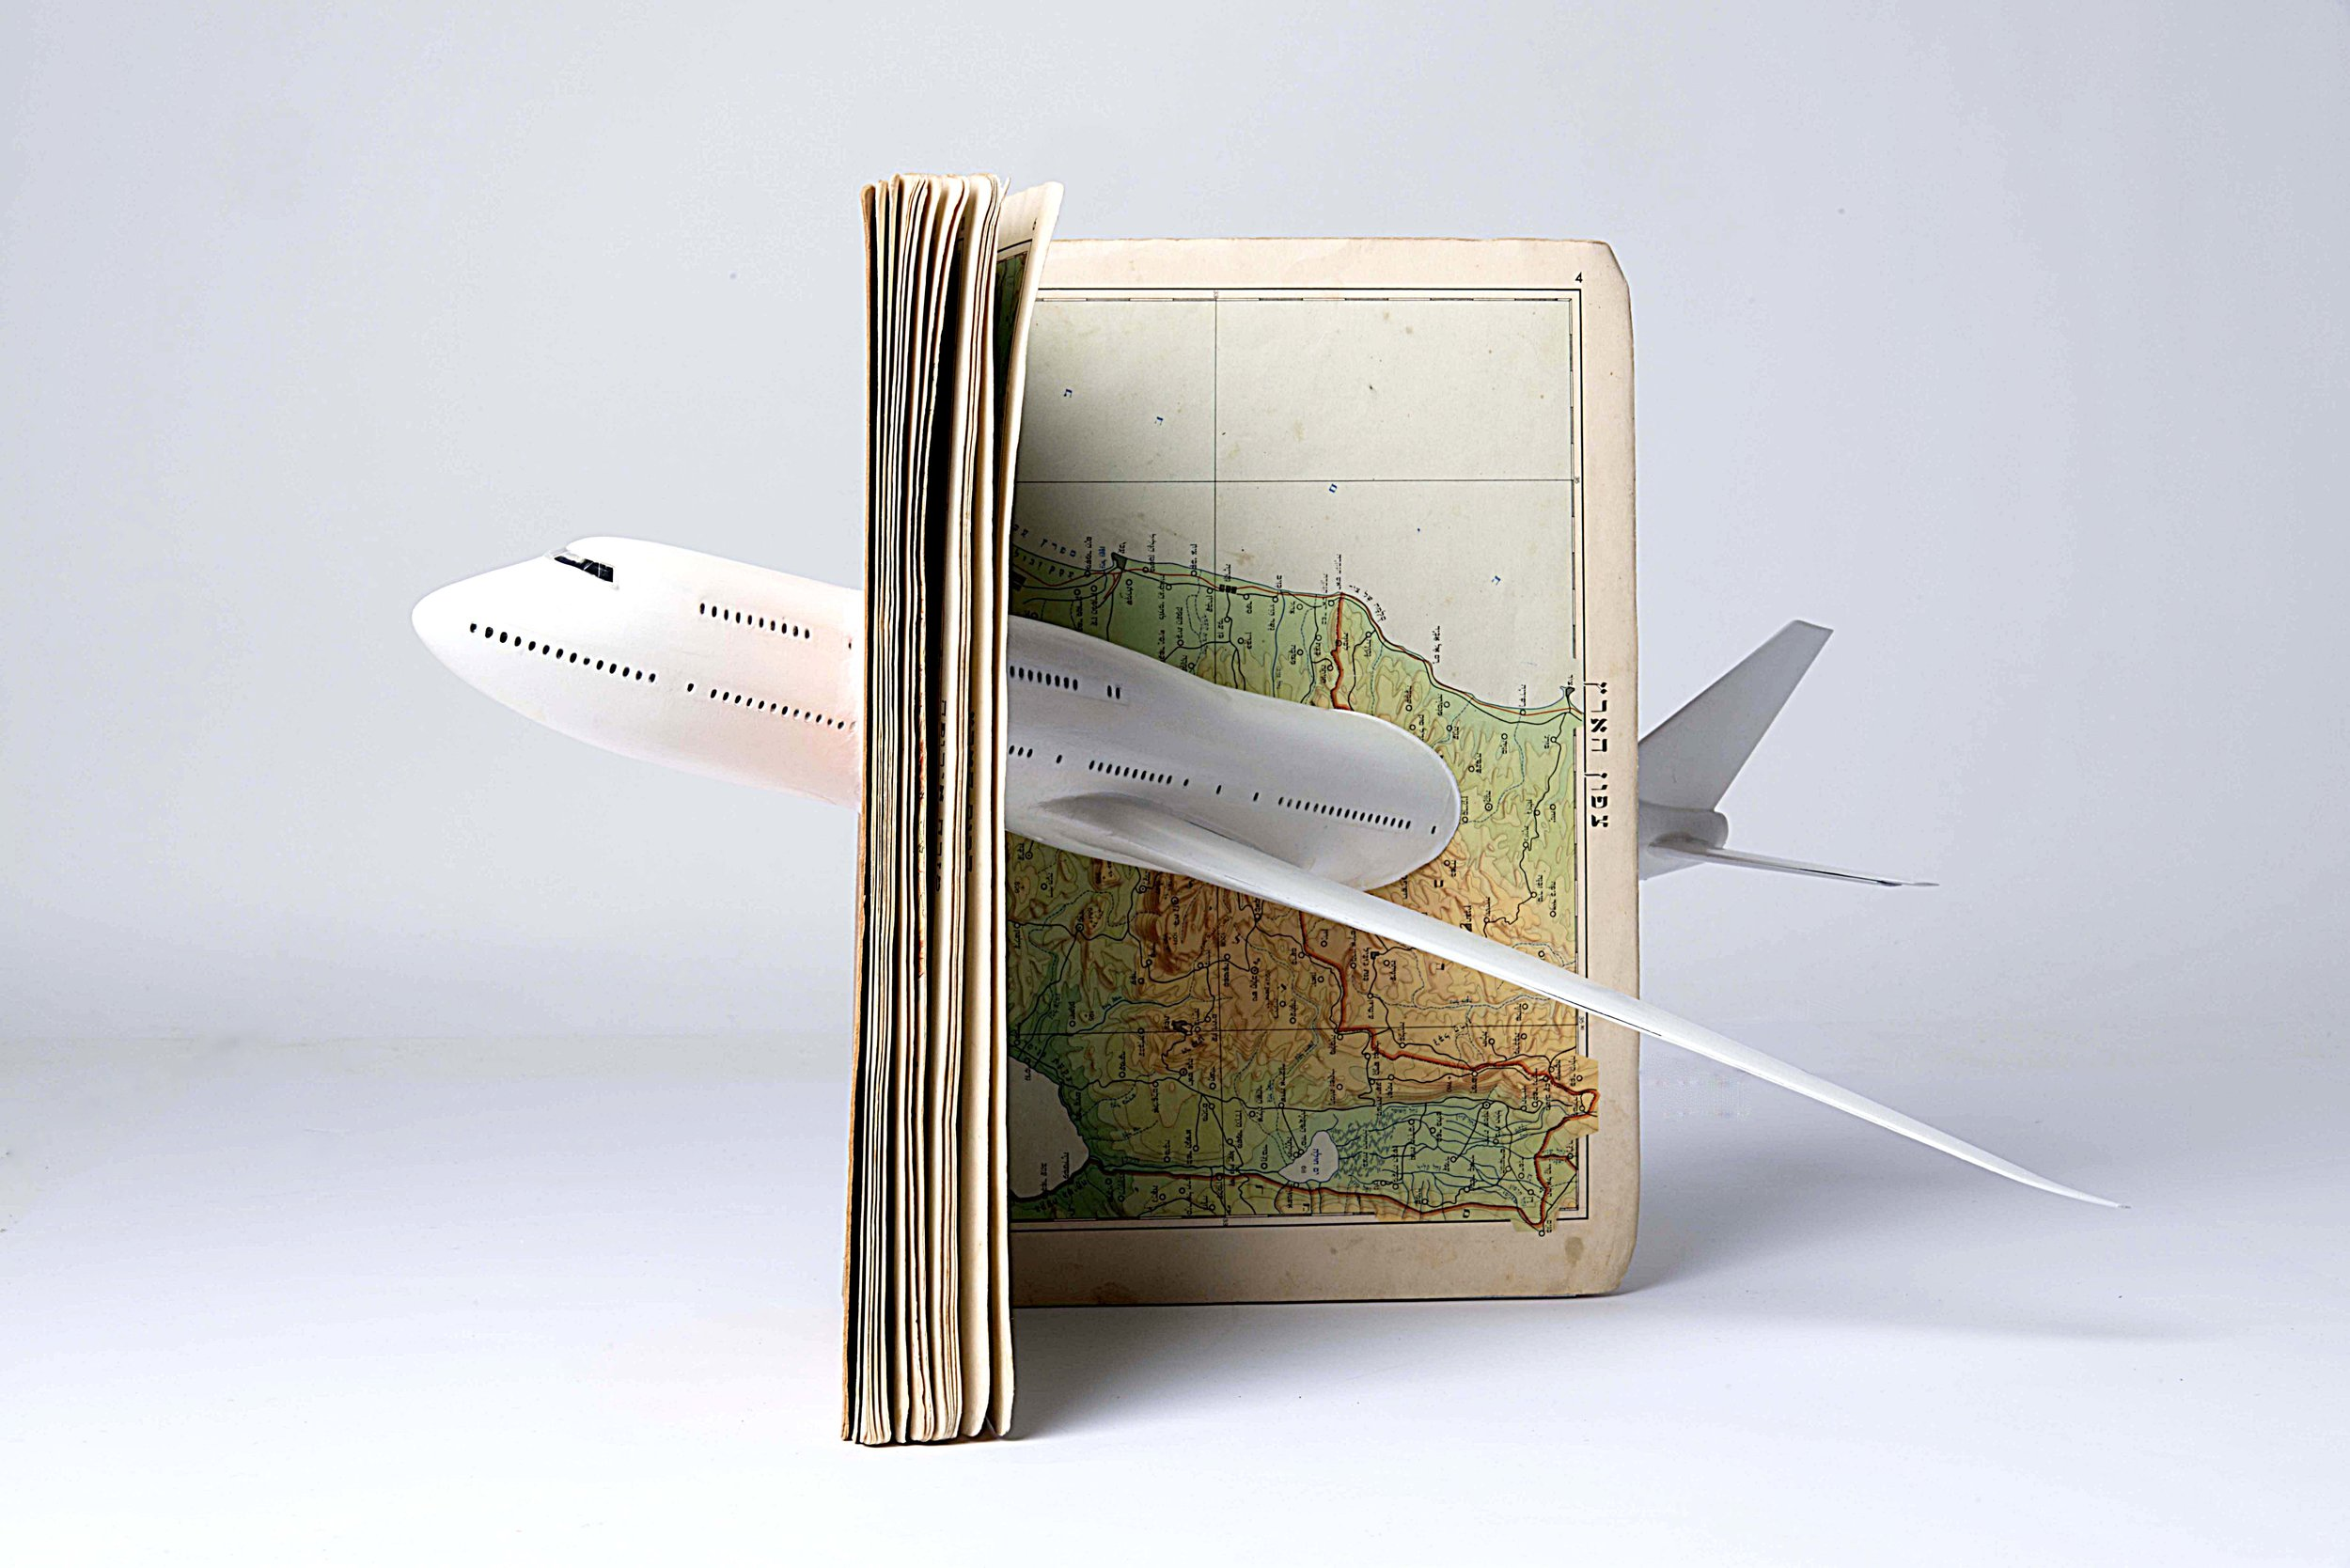 Air-Atlas, 2018, Atlas, Airplane Model, 50X50X50 cm. From the exhibition: The Map: Reading Between the Lines, 2018, MUSA Eretz Israel Museum, Tel-Aviv. Curator: Batia Donner